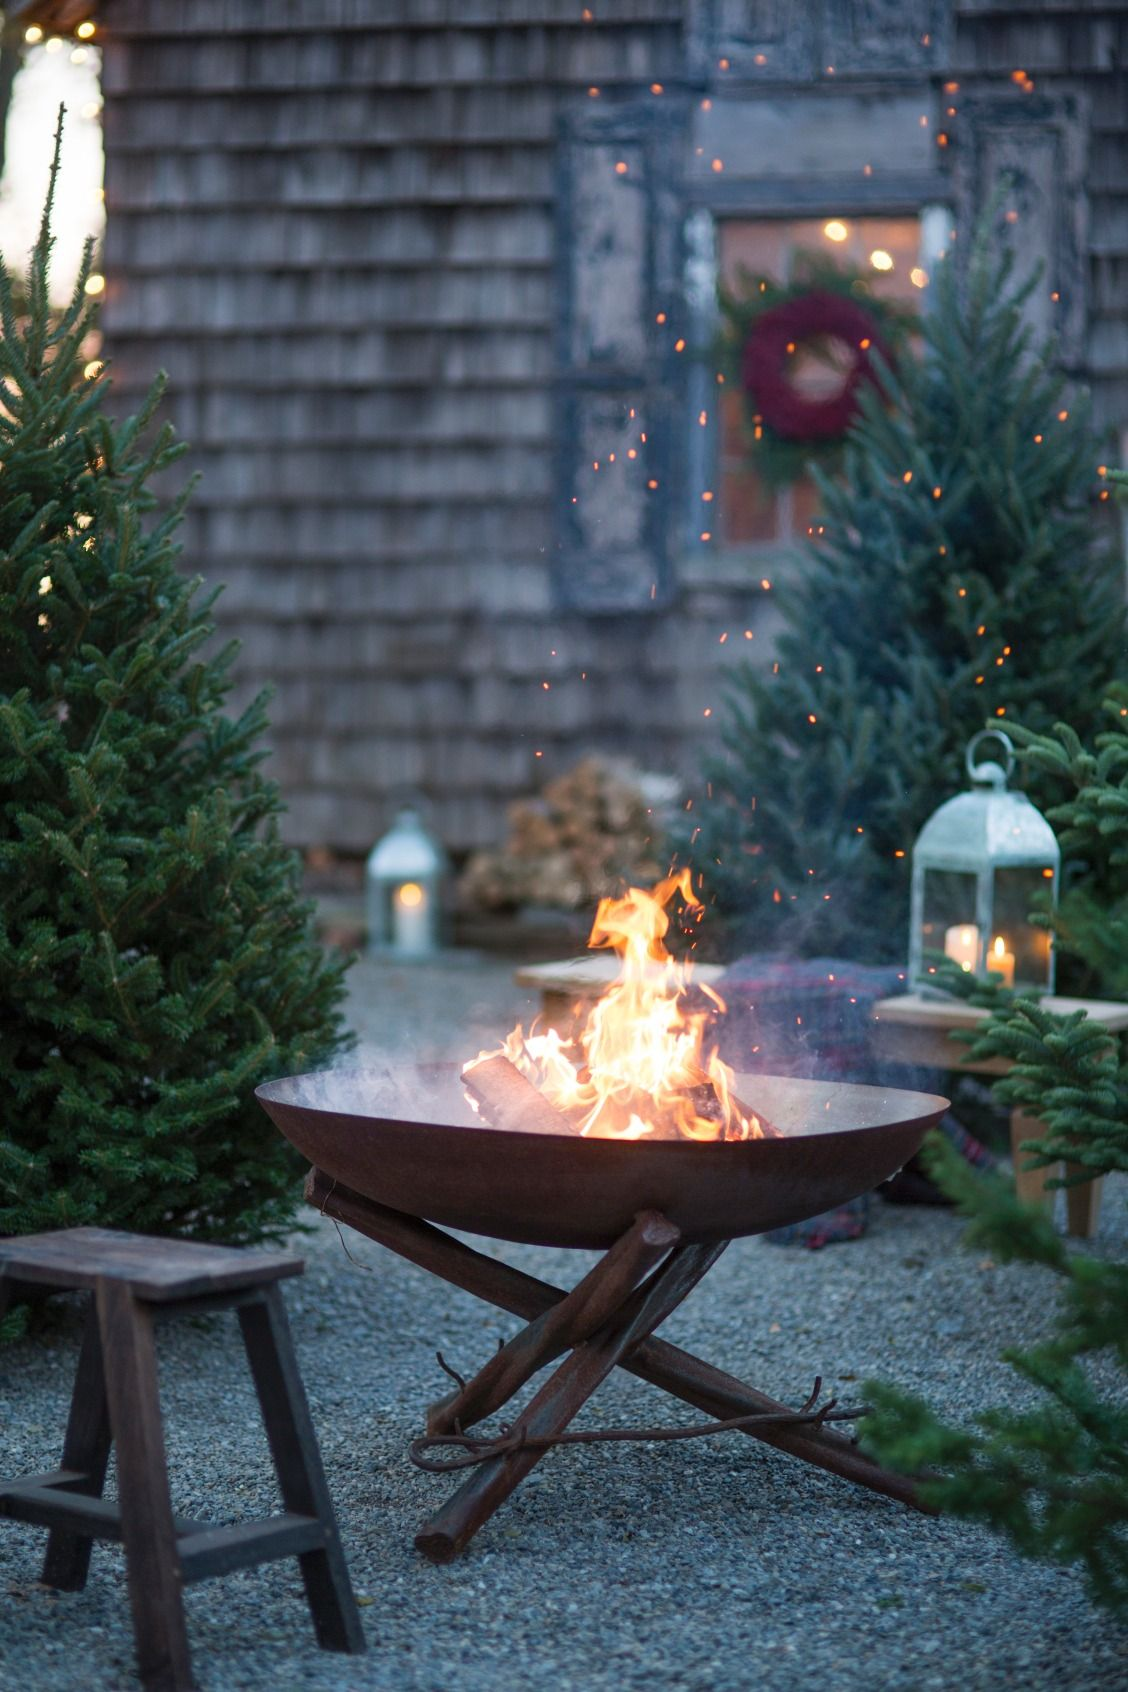 Christmas around the firepit